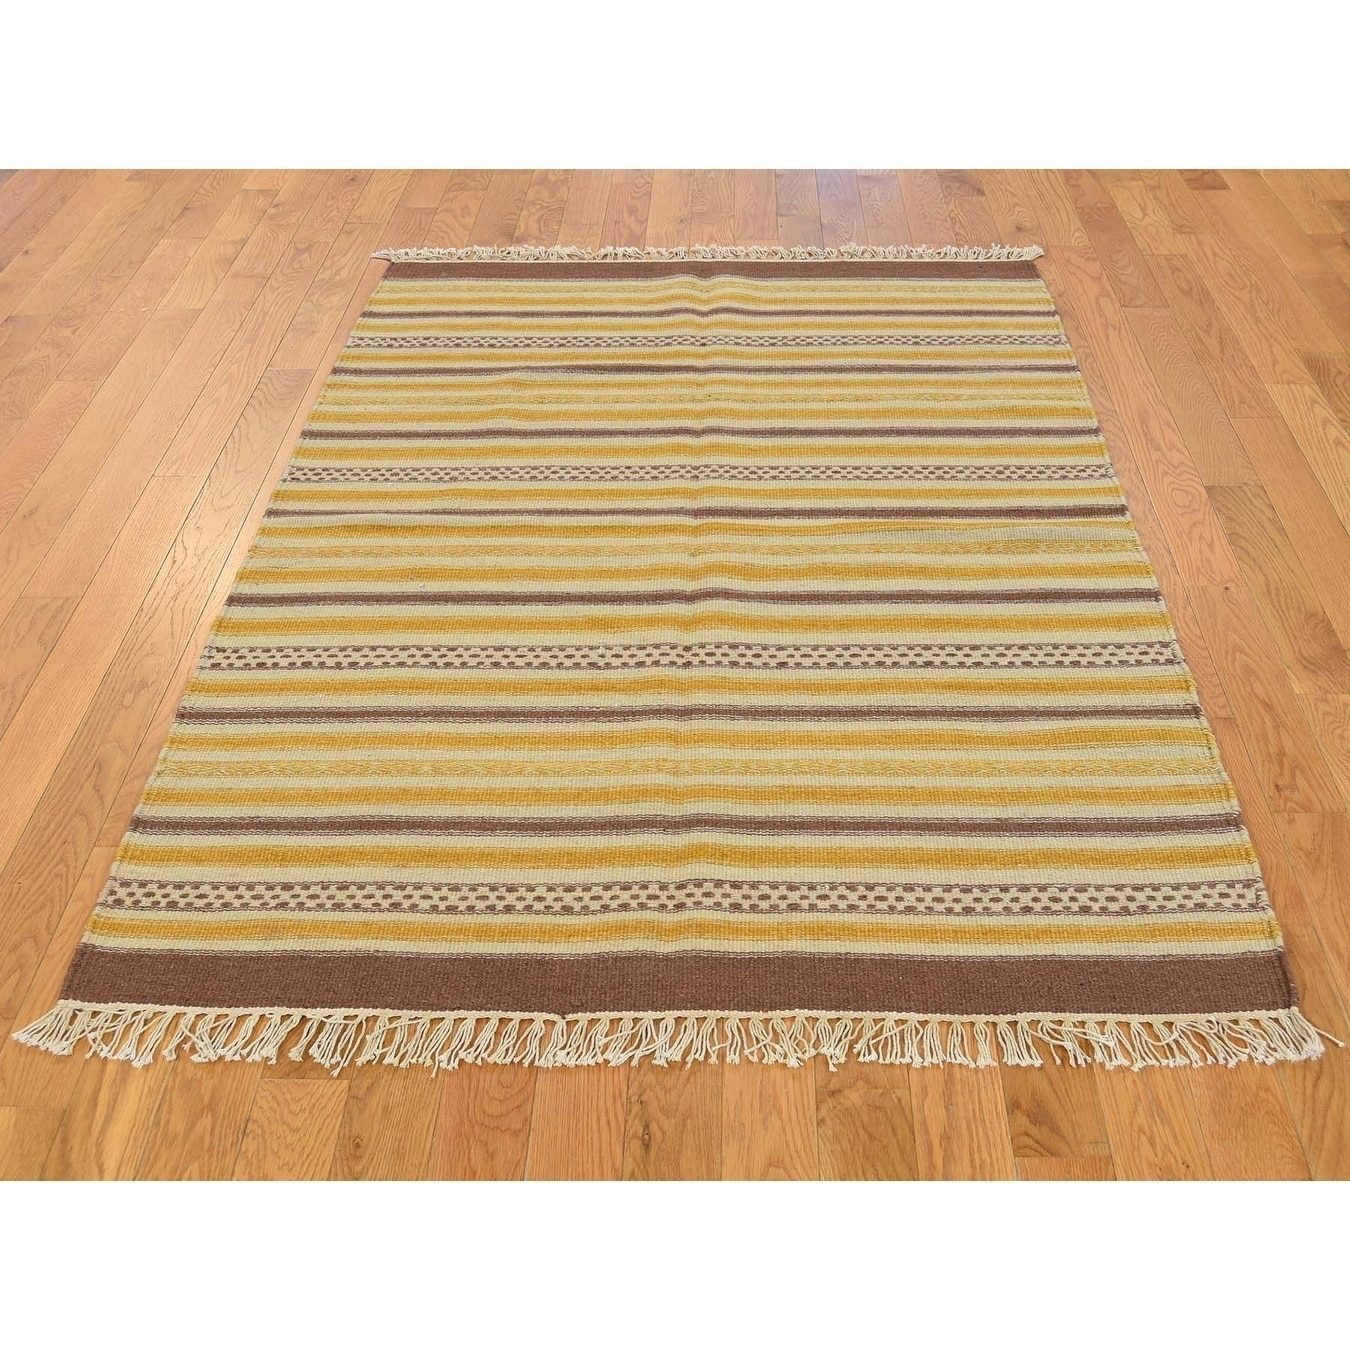 Hand Knotted Multicolored Flat Weave with Wool Oriental Rug - 210 x 5